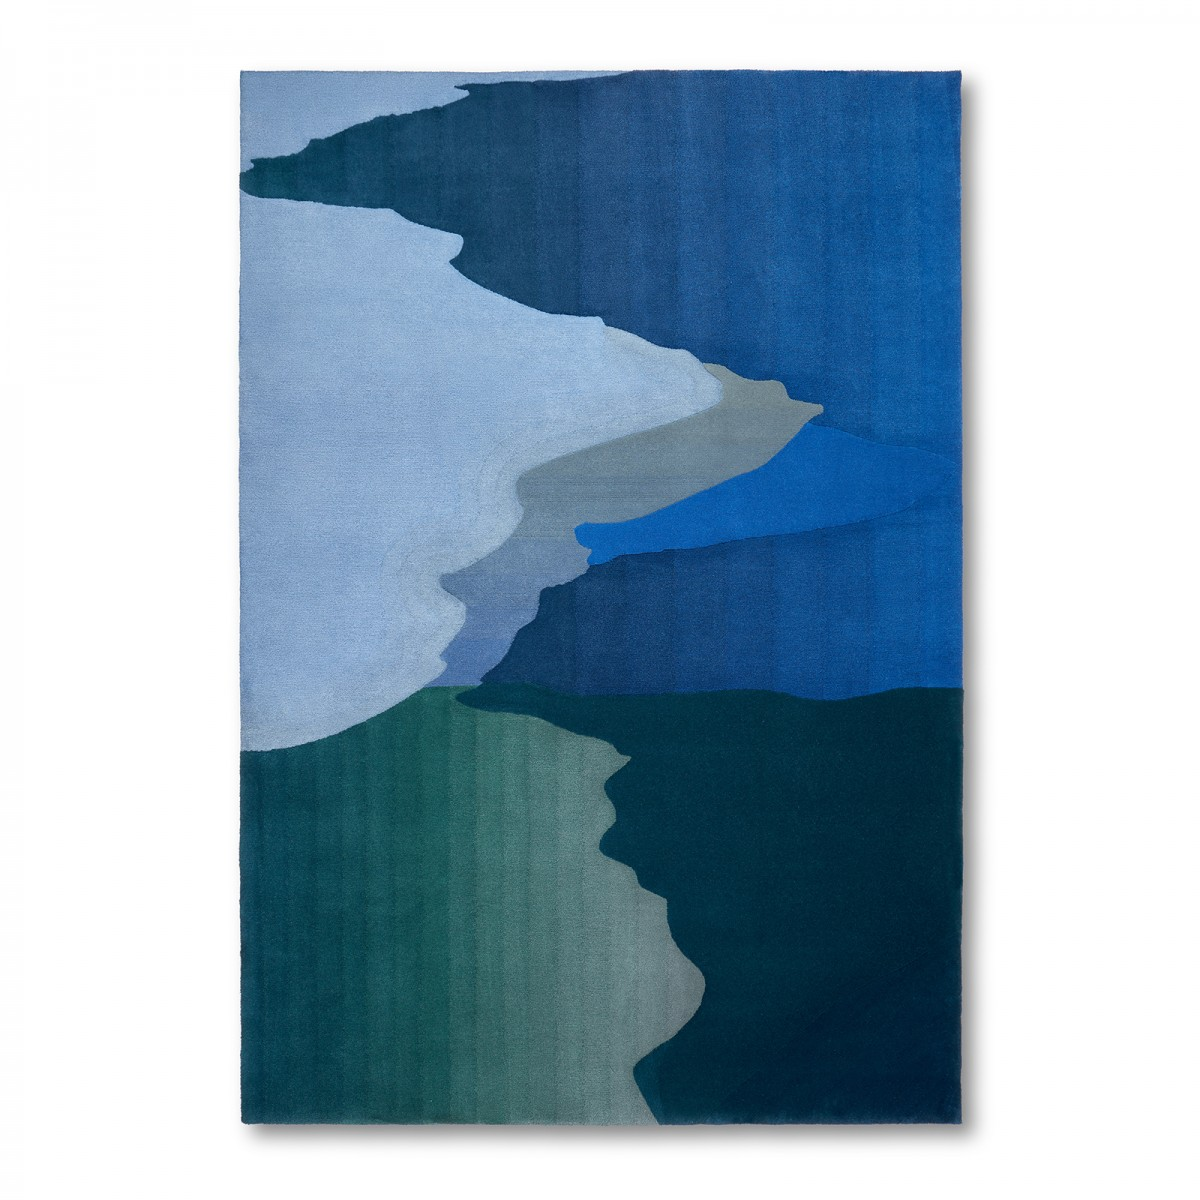 Tides Rug, new from Ginger & Jagger